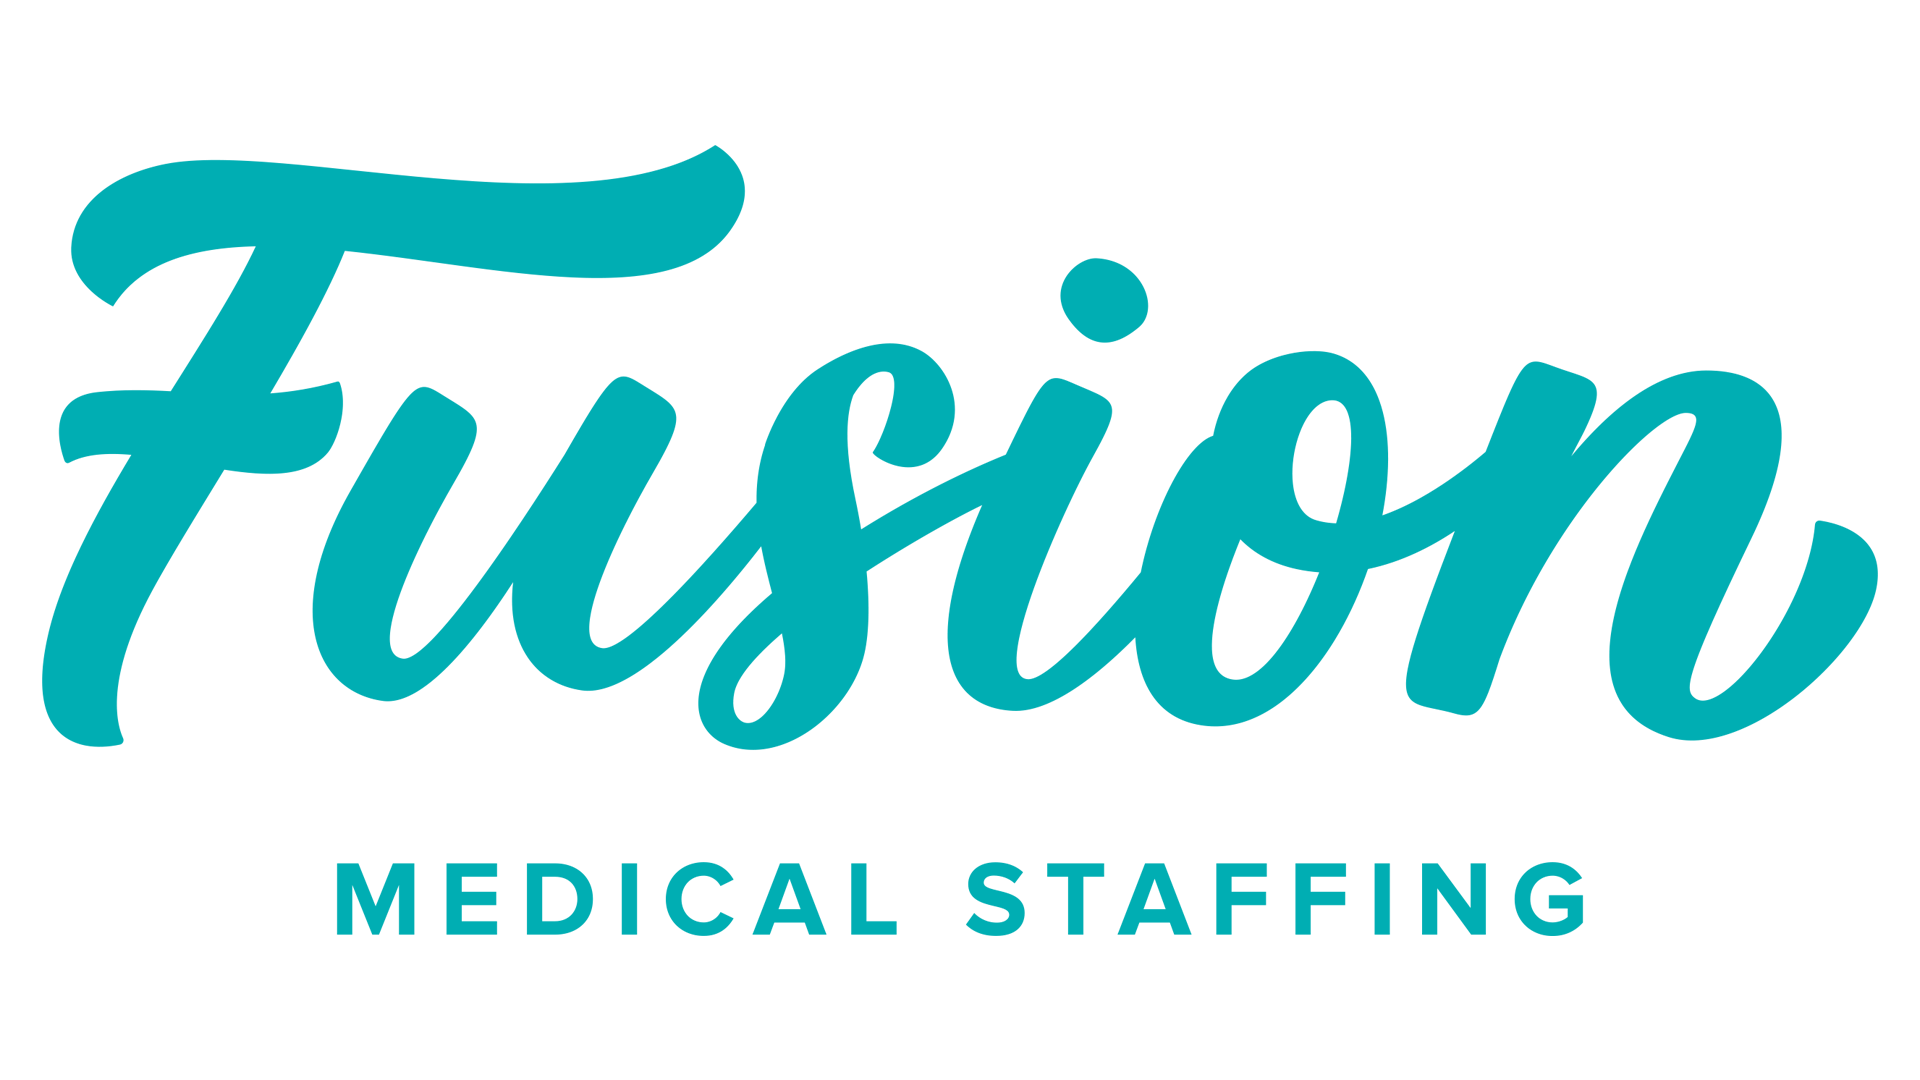 Fusion Medical Staffing Celebrates Christmas with Angels Among Us, Helping Families with Pediatric Cancer